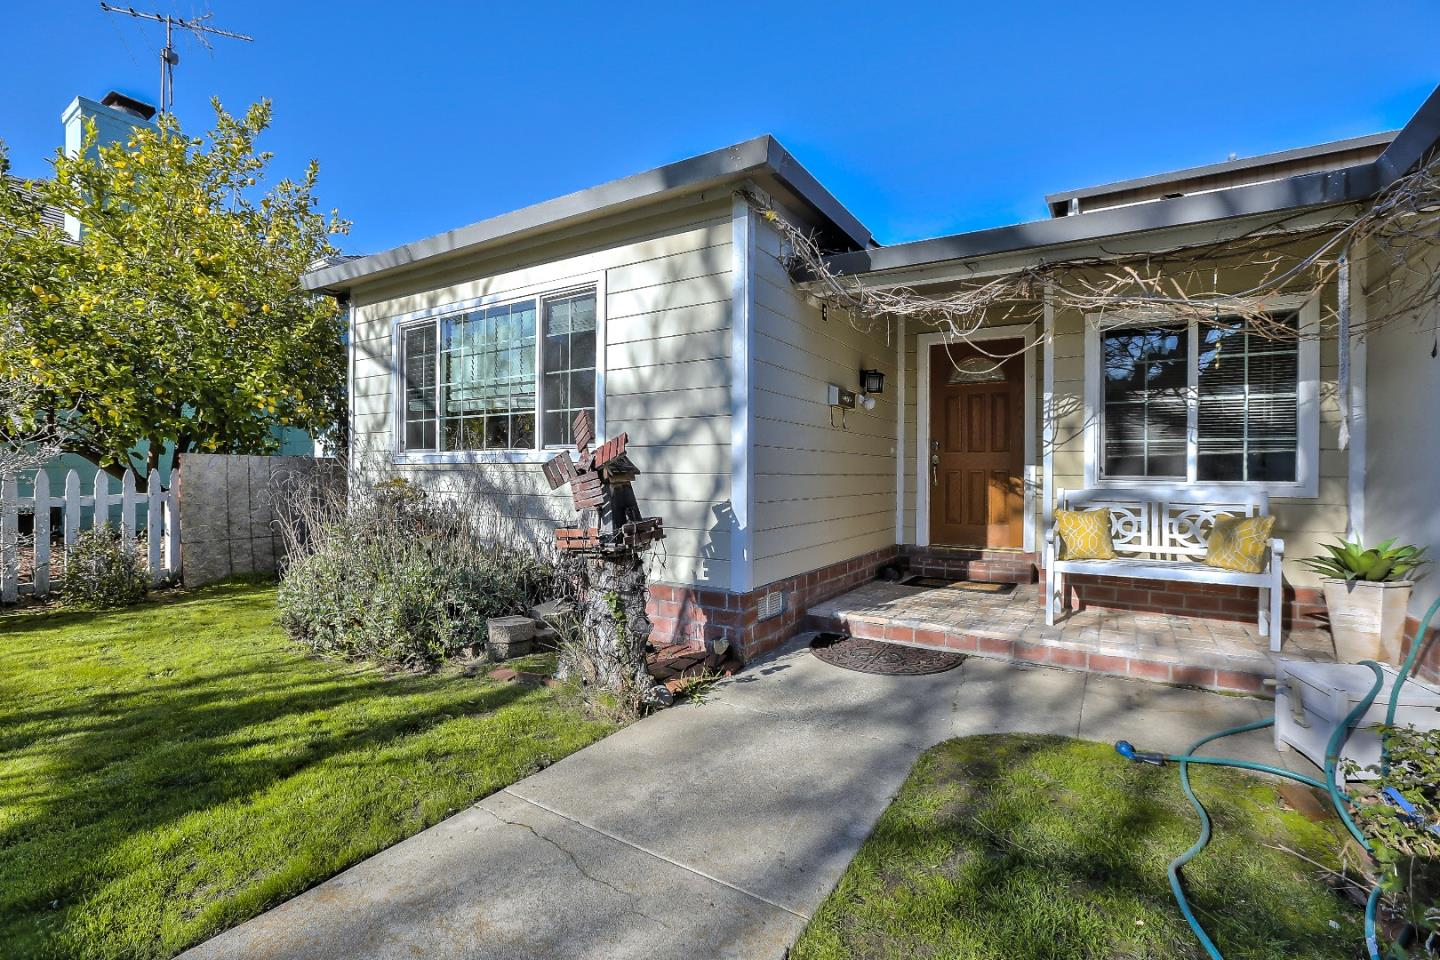 Single Family Home for Sale at 1448 Balboa Avenue 1448 Balboa Avenue Burlingame, California 94010 United States